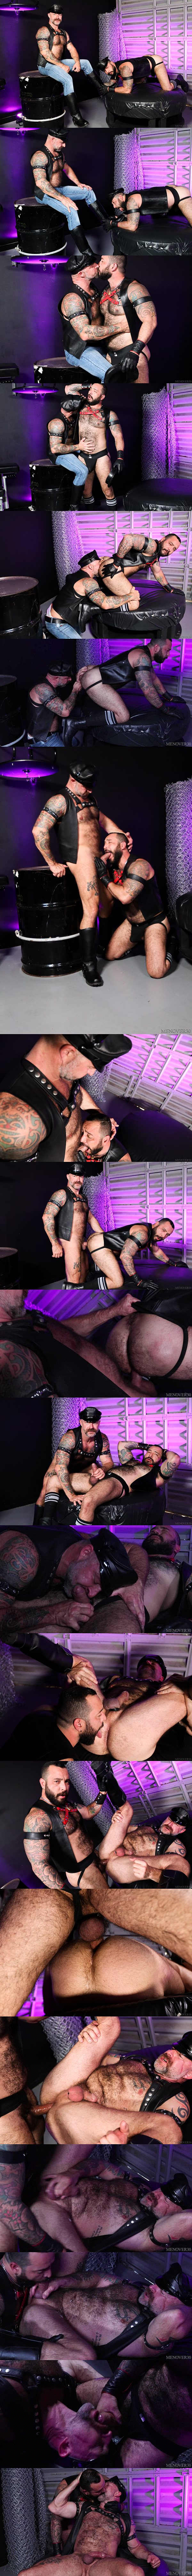 Inked macho daddy Julian Torres and Musclebear Montreal take turns barebacking each other before Julian fucks the cum out of Musclebear in Taking Care Of Leather Daddy at Menover30 01